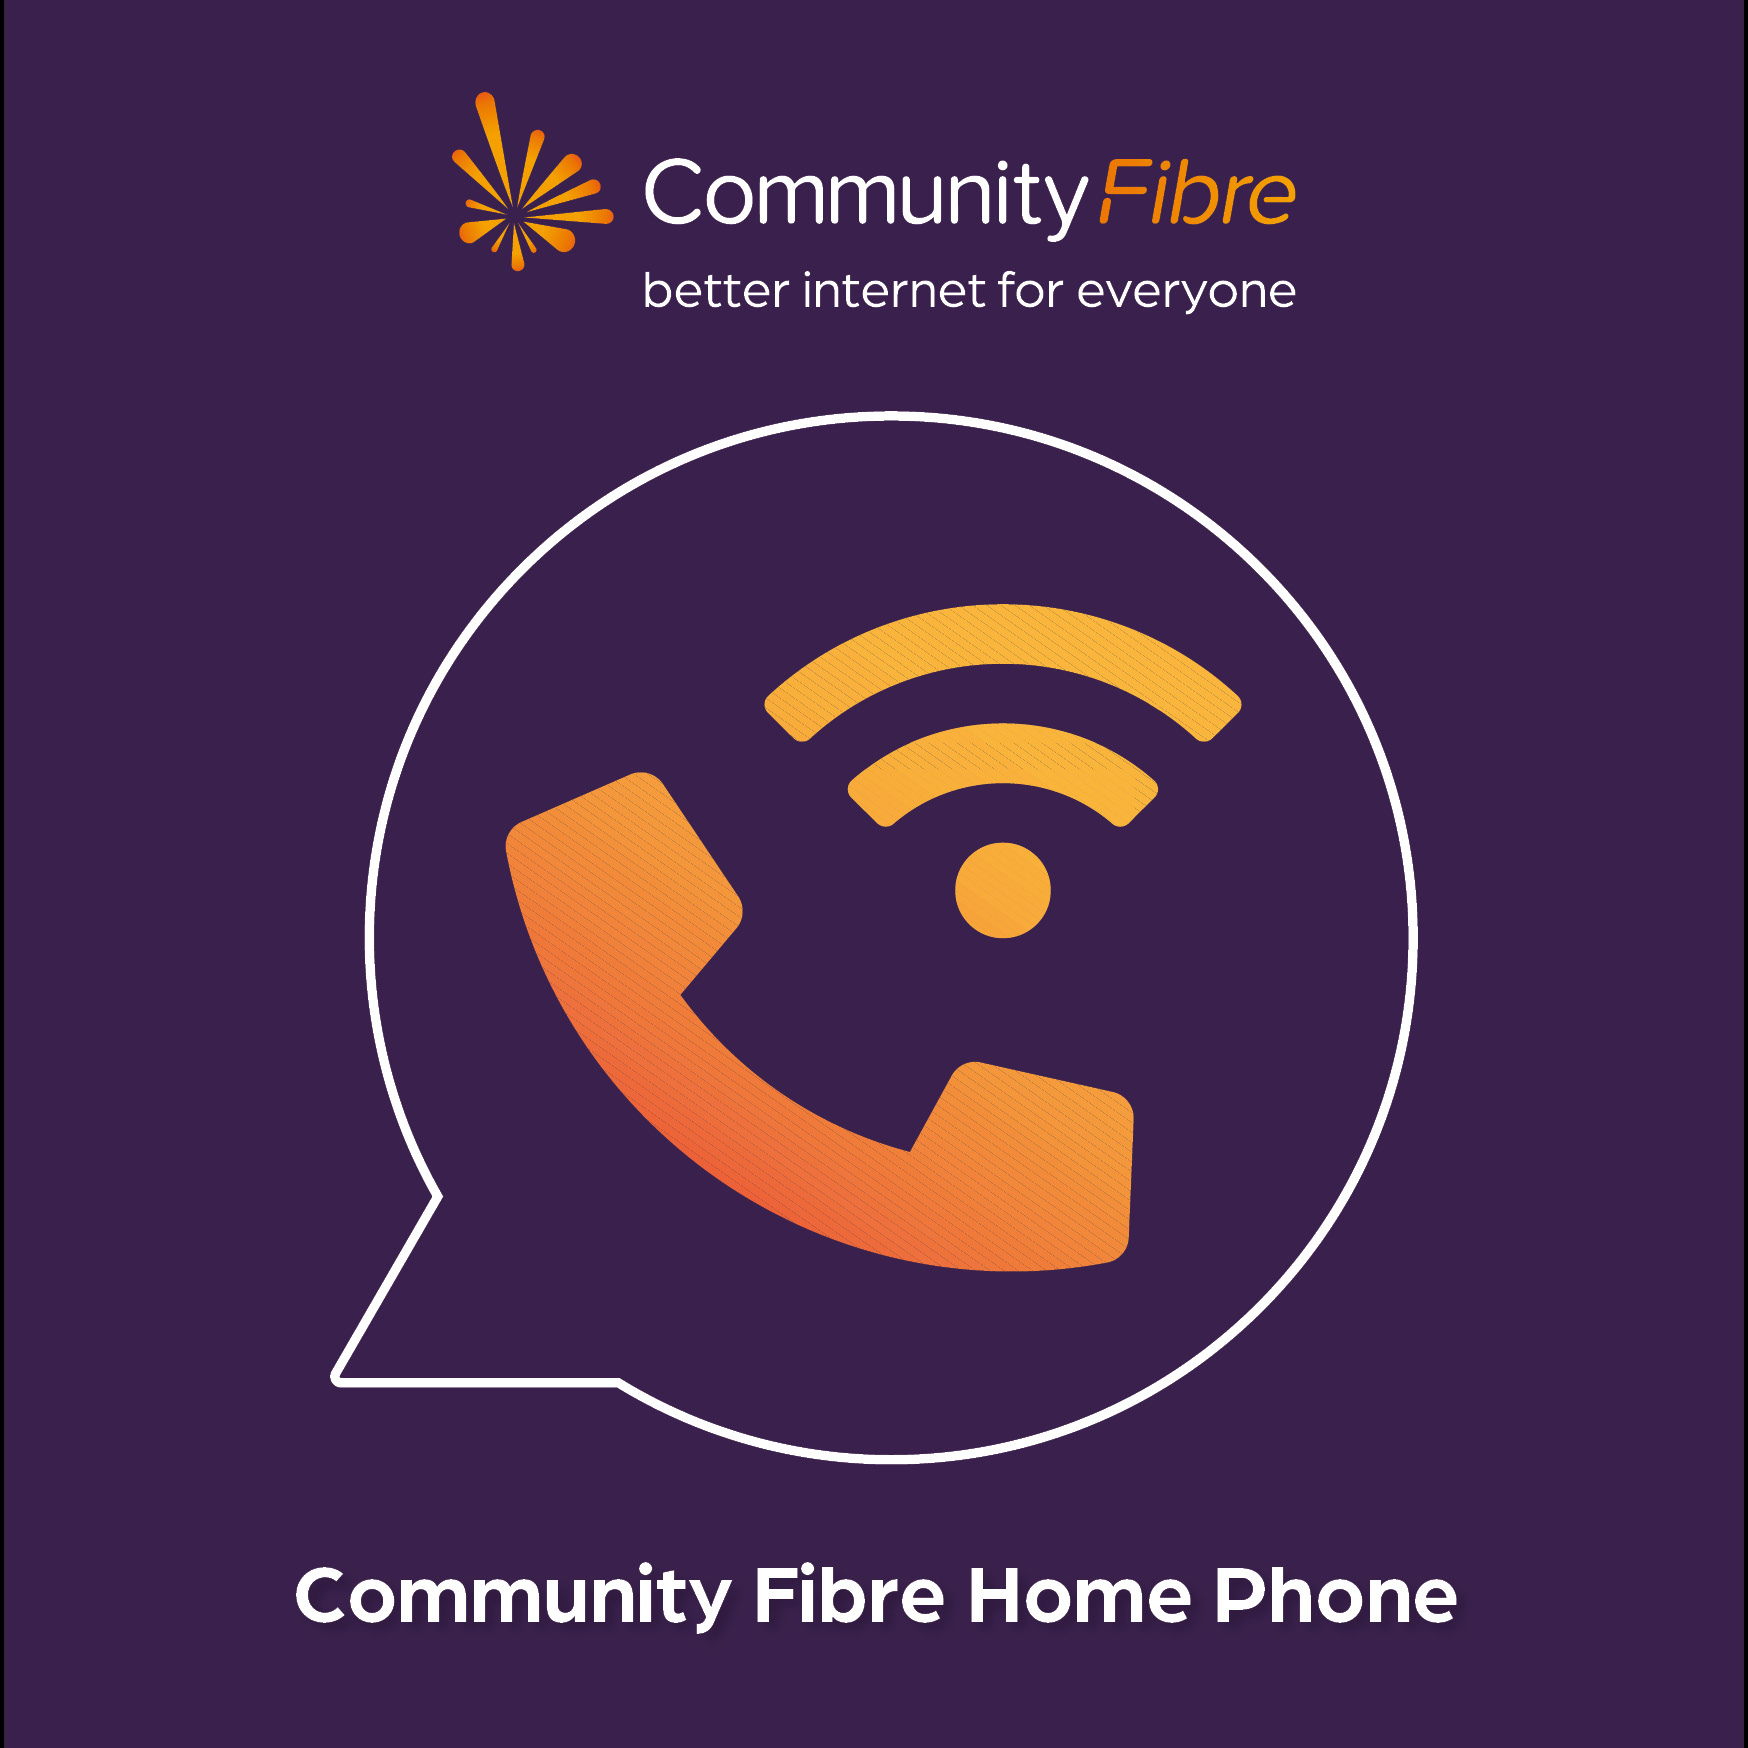 Community Fibre launches new home phone service to complete home connectivity package